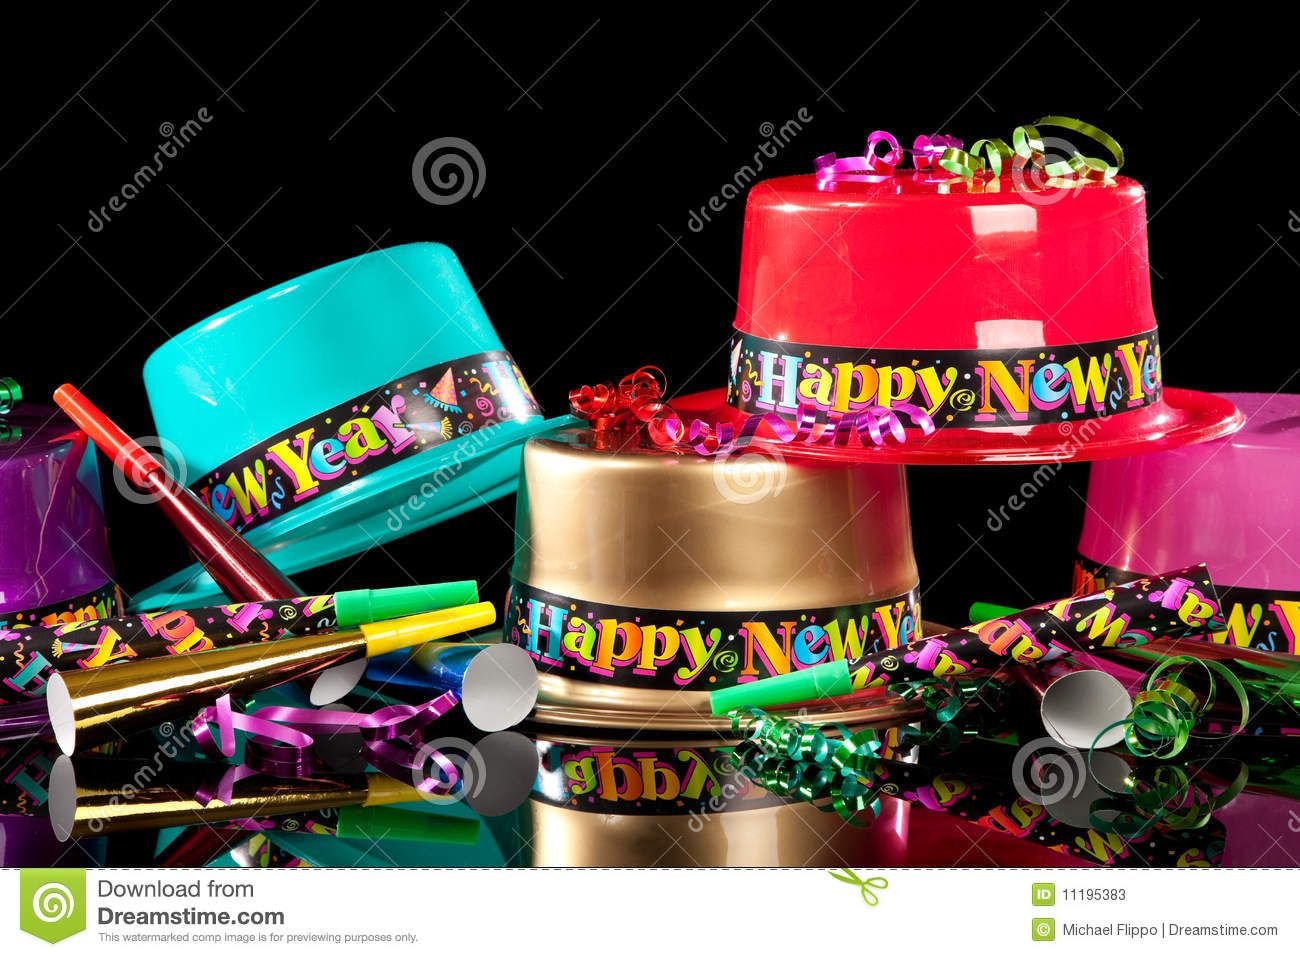 Photo about Colorful New Years' Eve party hats on a black